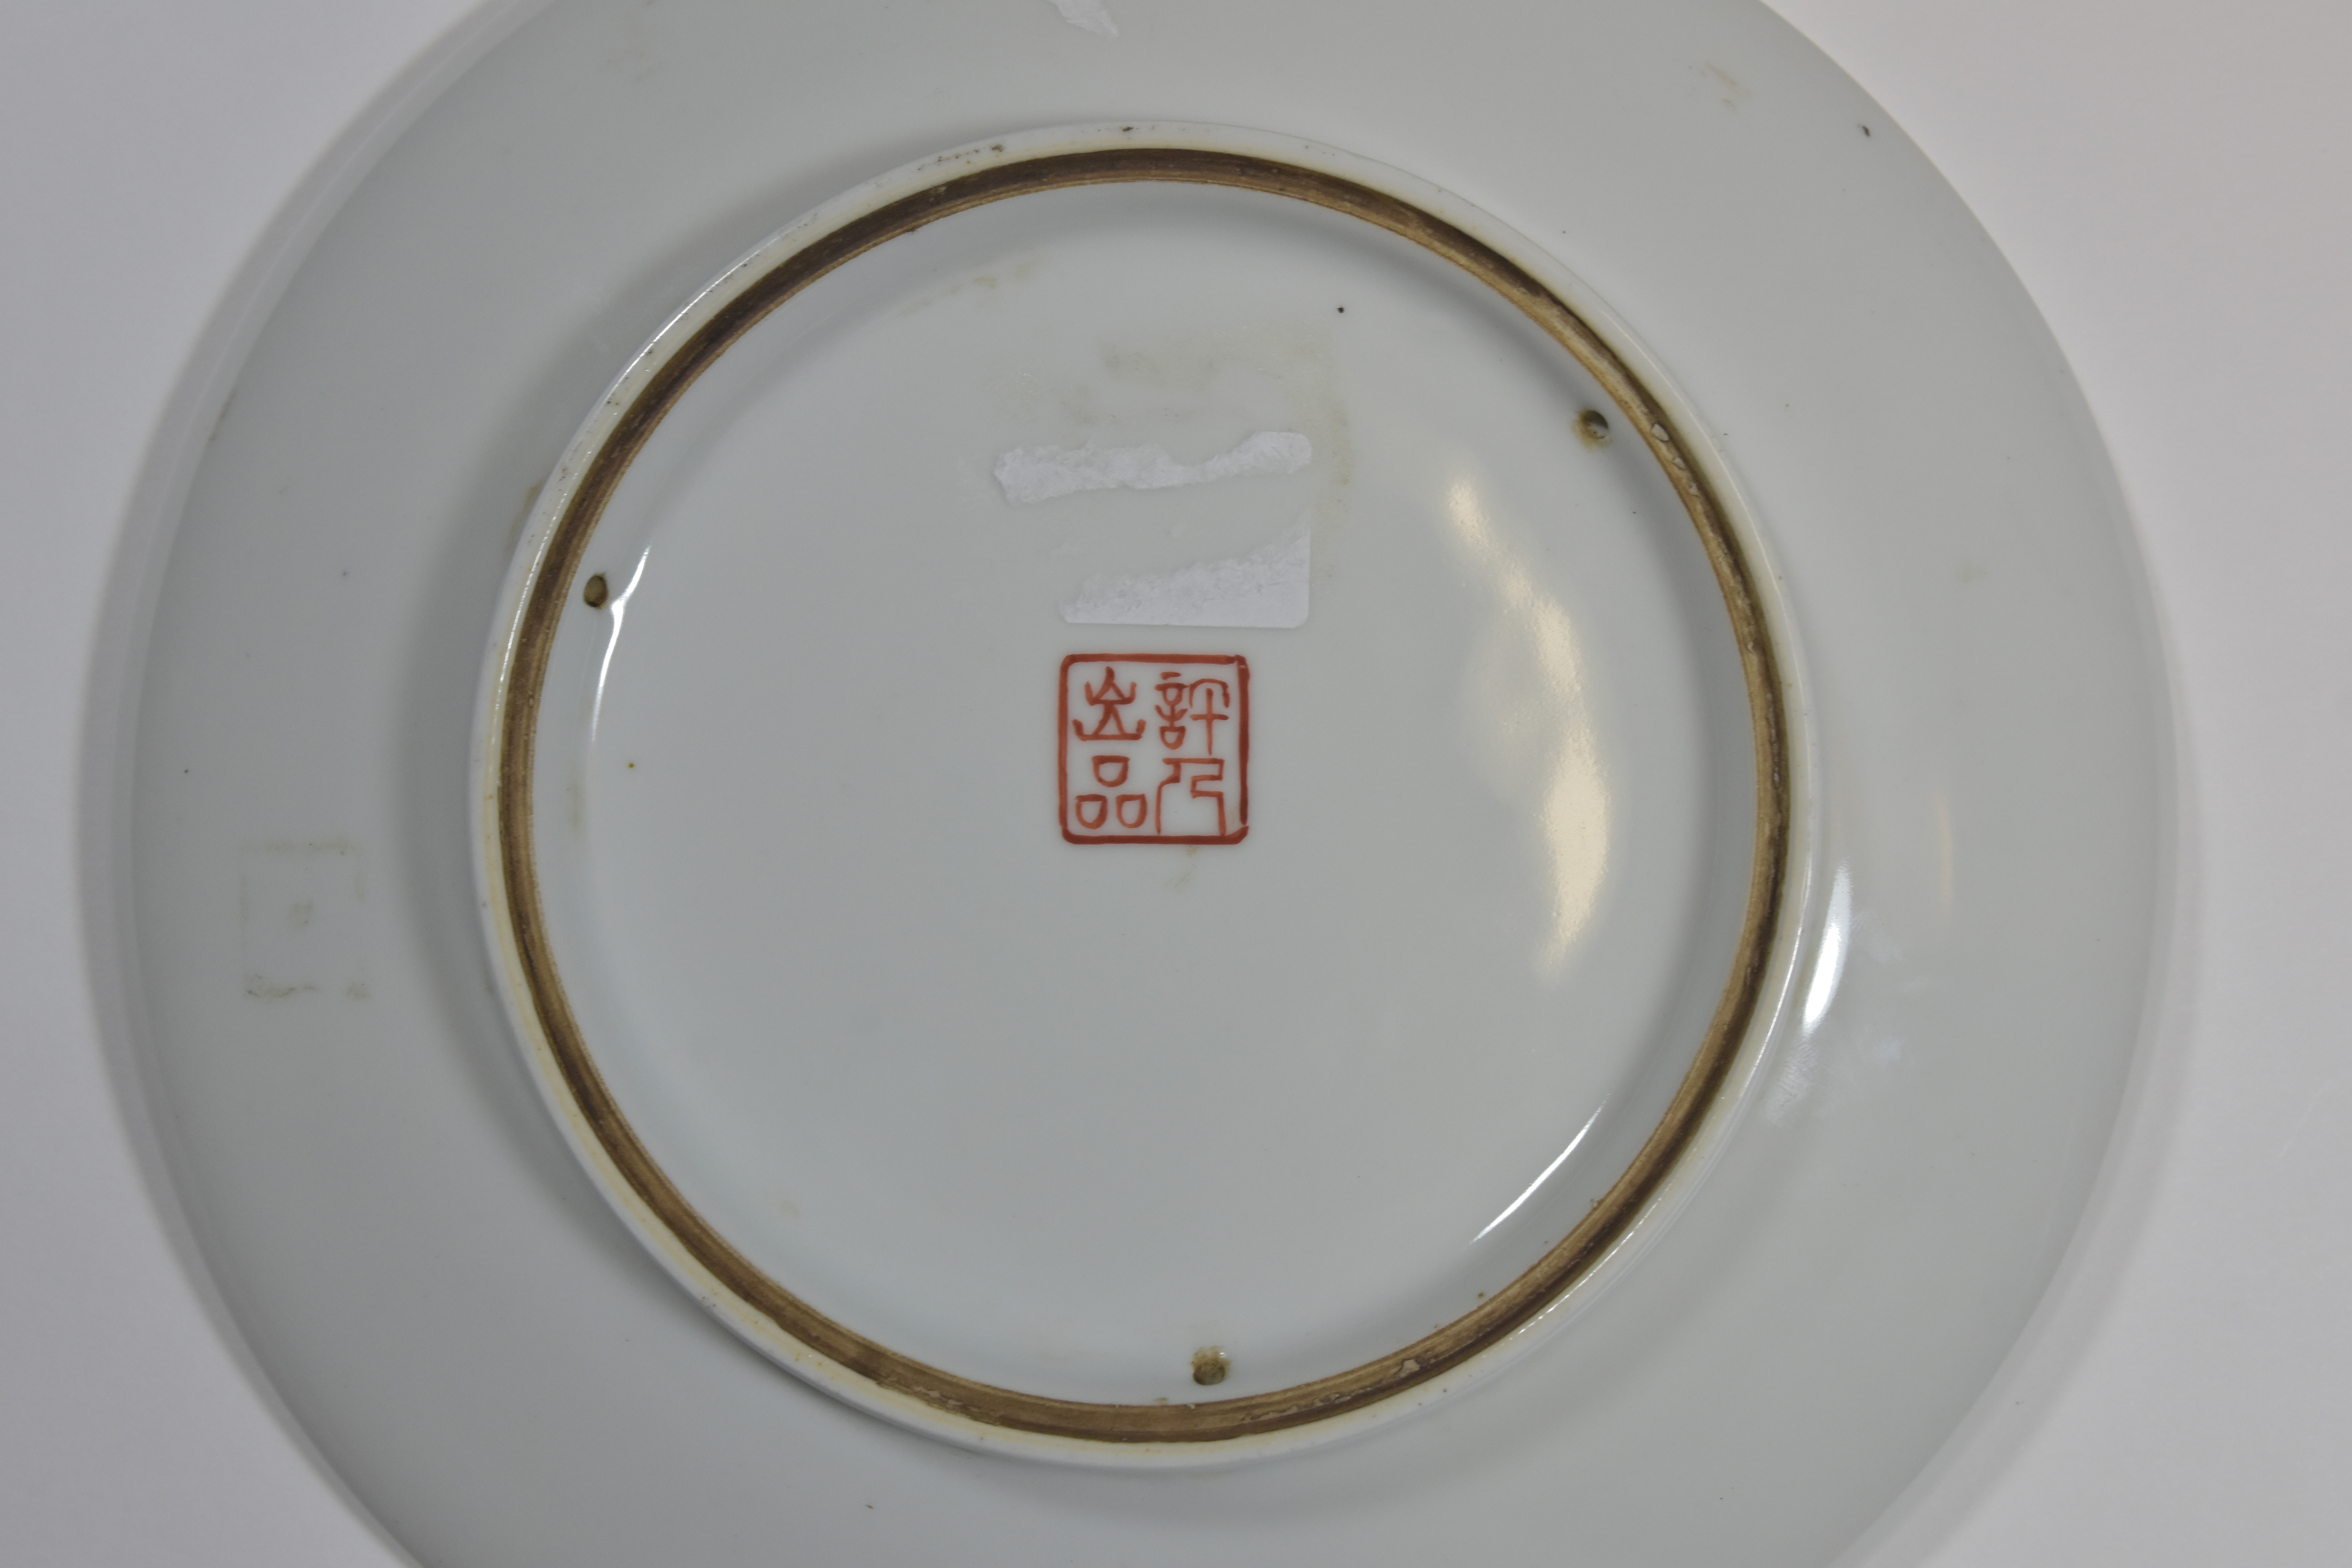 Lot 29 - A Black and White plate painted with snowy mountain scene republic of China 24cm文革時代 許人出品 黑白釉溪山瑞雪